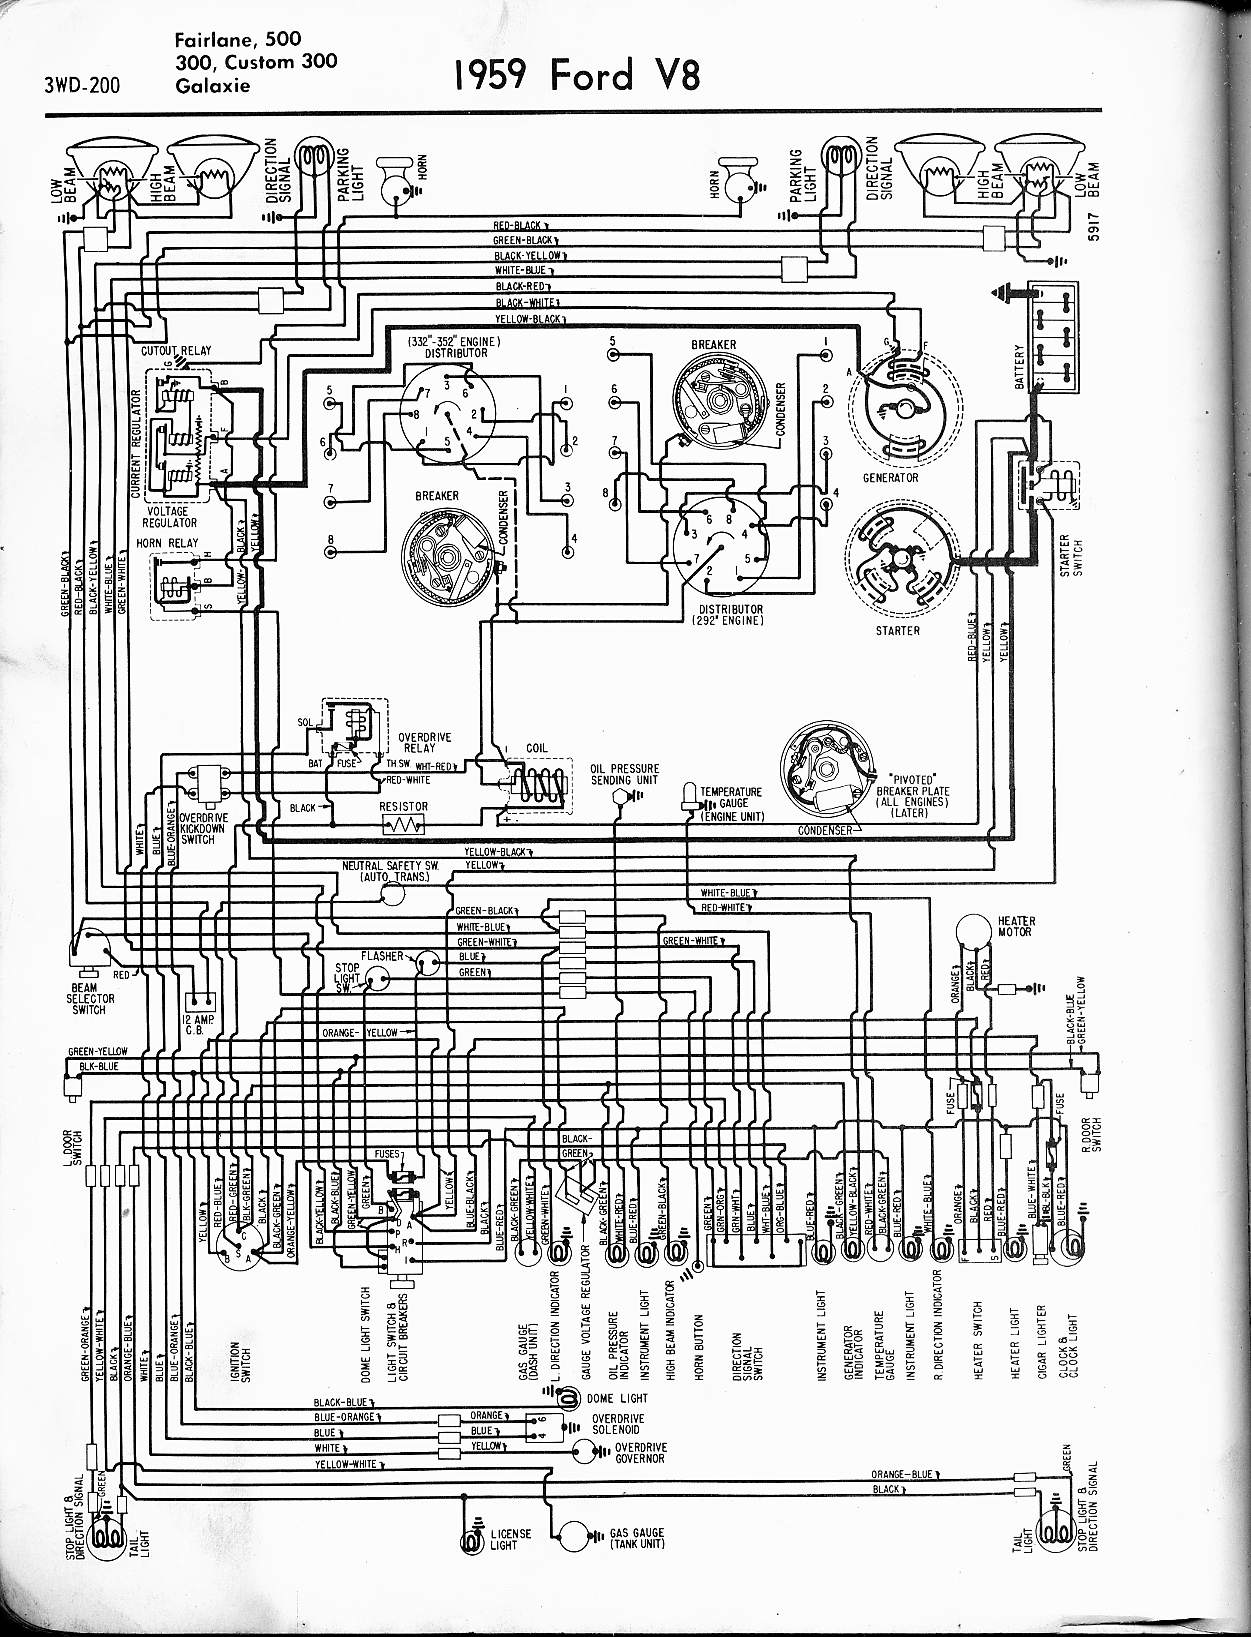 MWire5765 200 57 65 ford wiring diagrams 1963 mercury comet wiring diagram at fashall.co